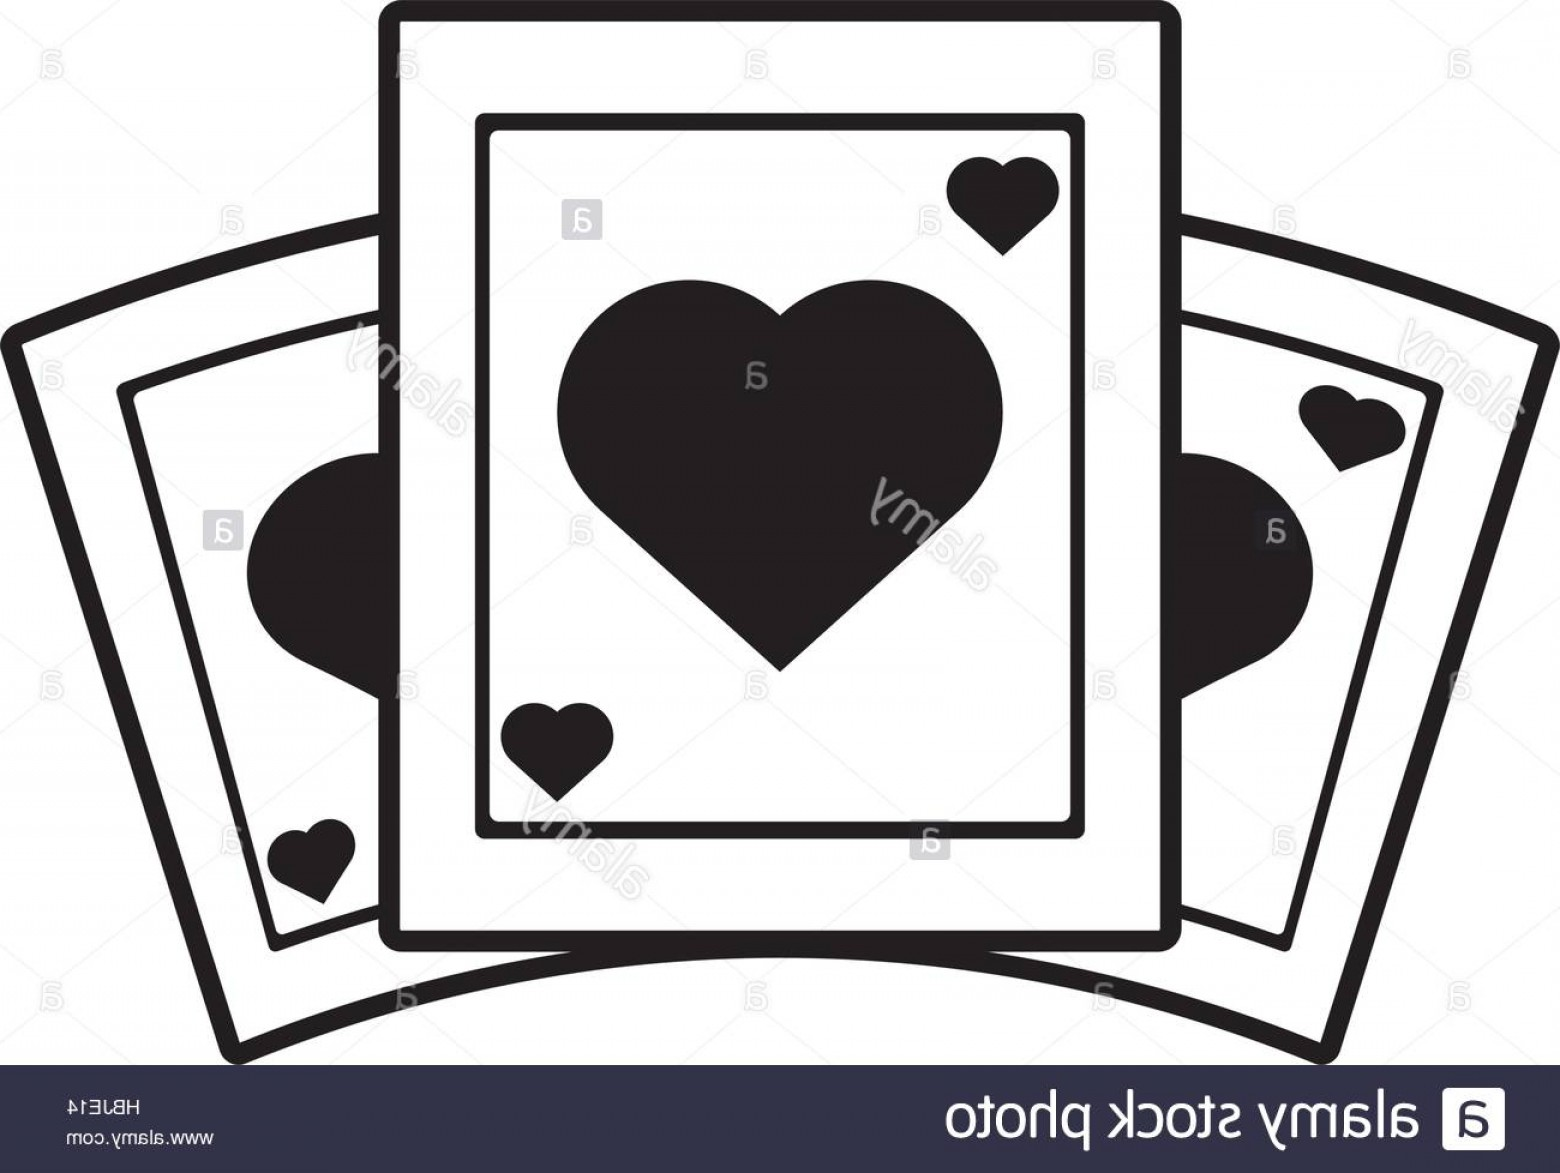 10 Playing Card Vector: Stock Photo Poker Playing Card Gambling Outline Vector Illustration Eps